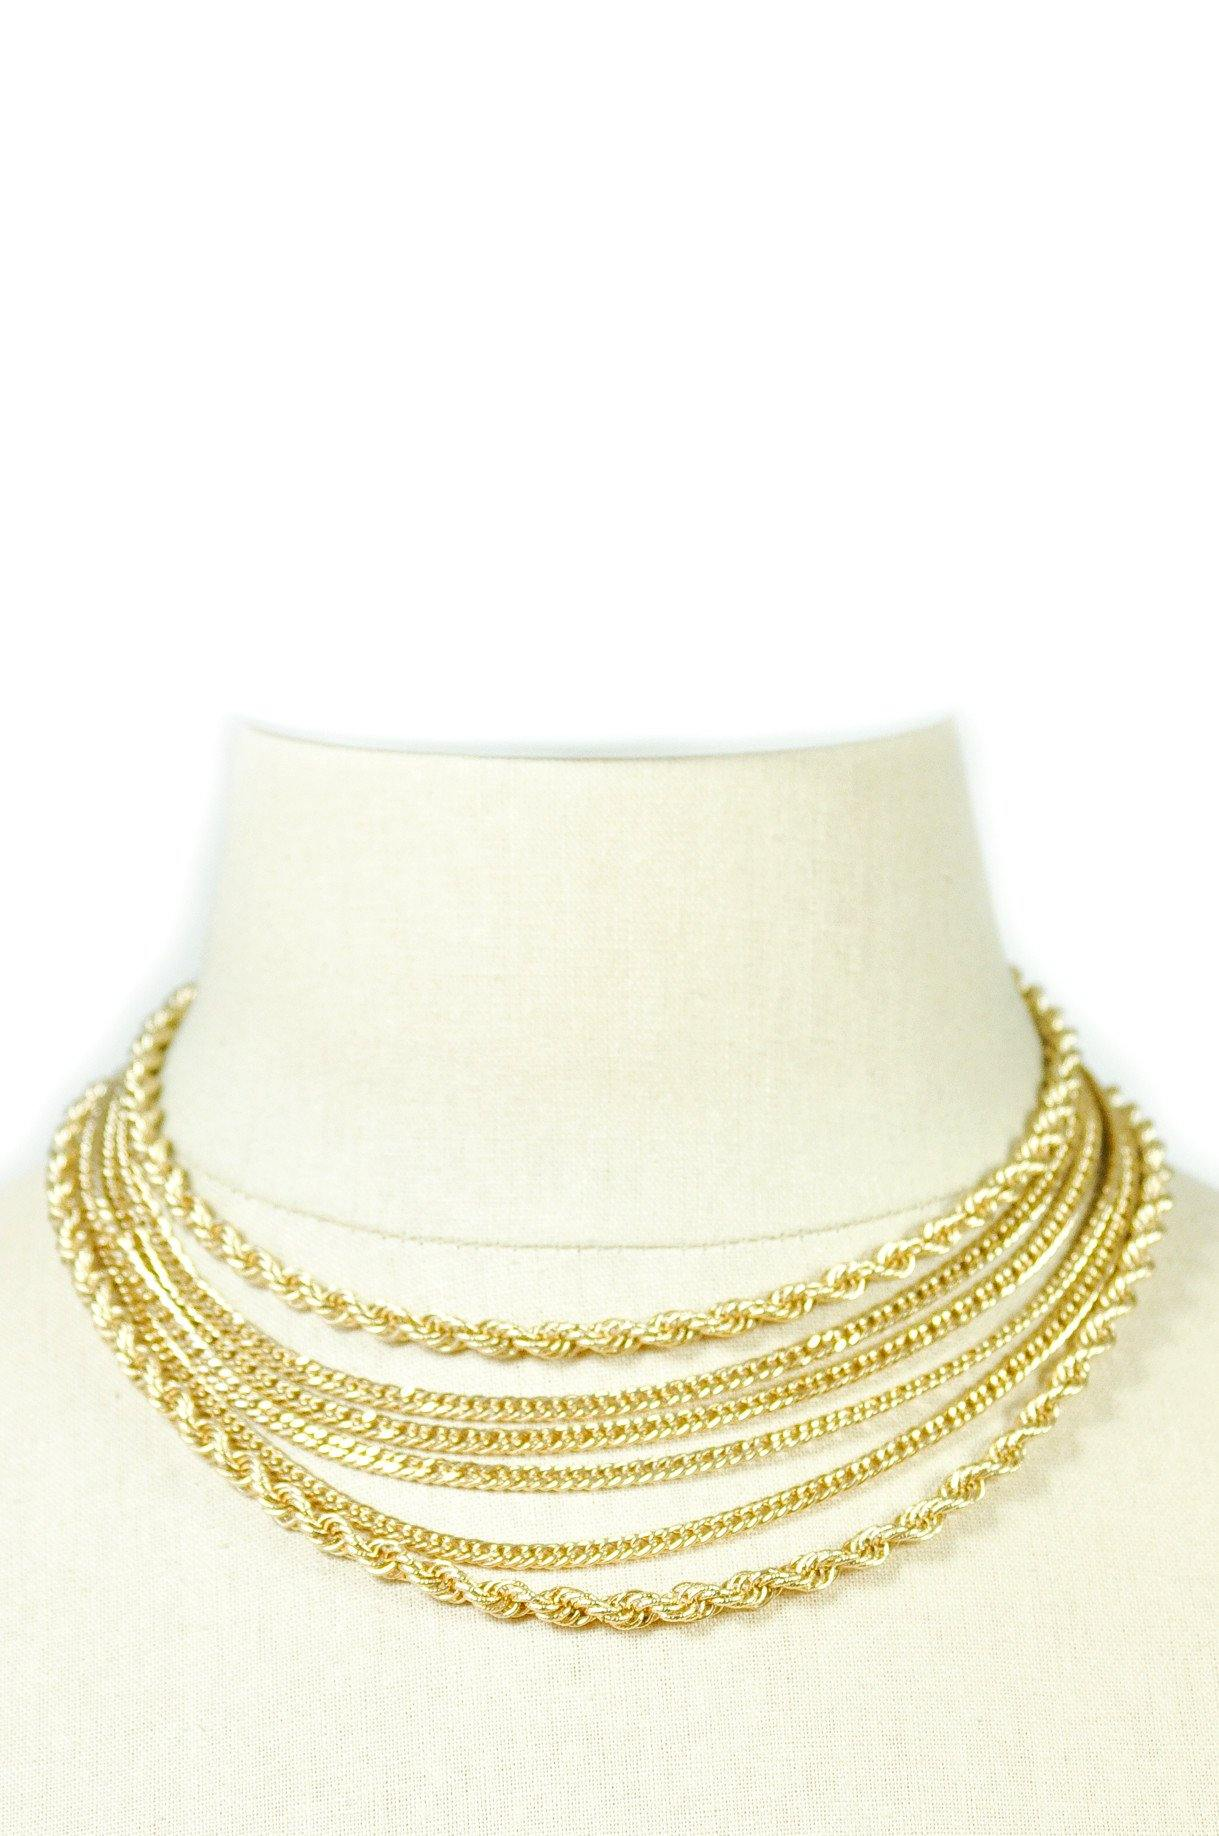 80's__Monet__Multi-Chain Necklace